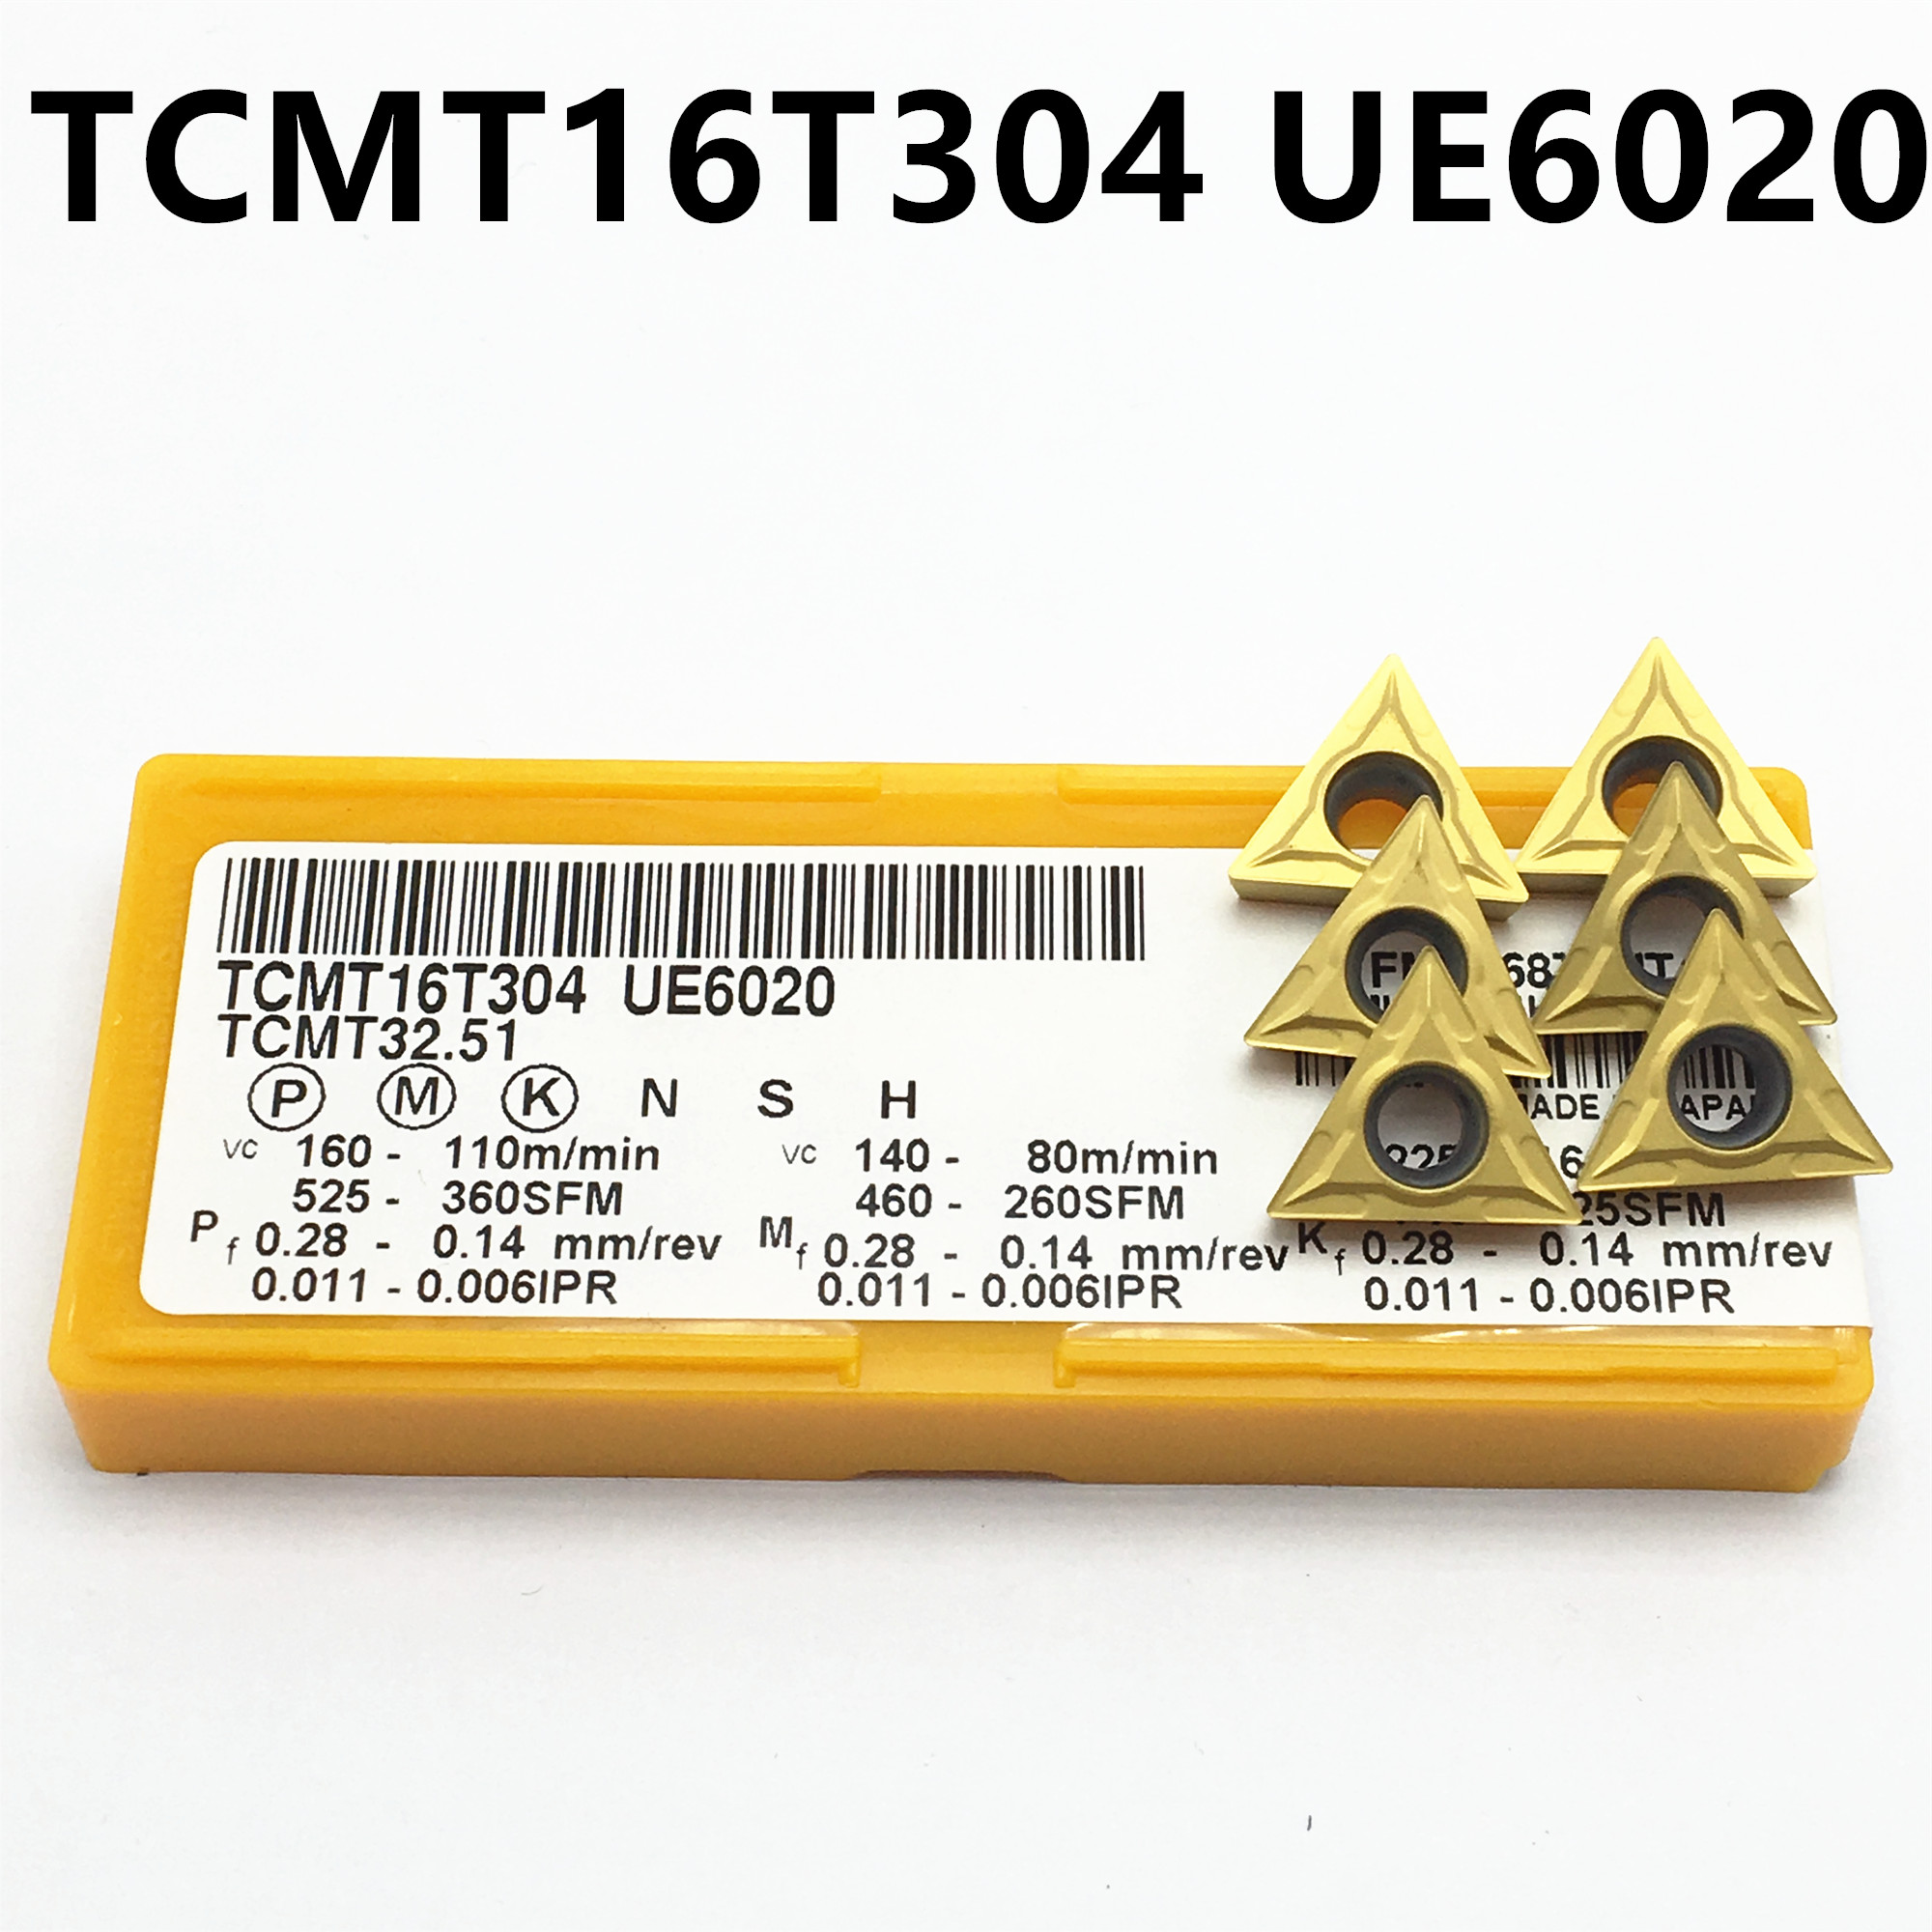 10PCS TCMT16T304 UE6020 Carbide Insert High Quality Internal Turning Insert TCMT 16T304 TCMT110204 CNC Machine Cutting Tool